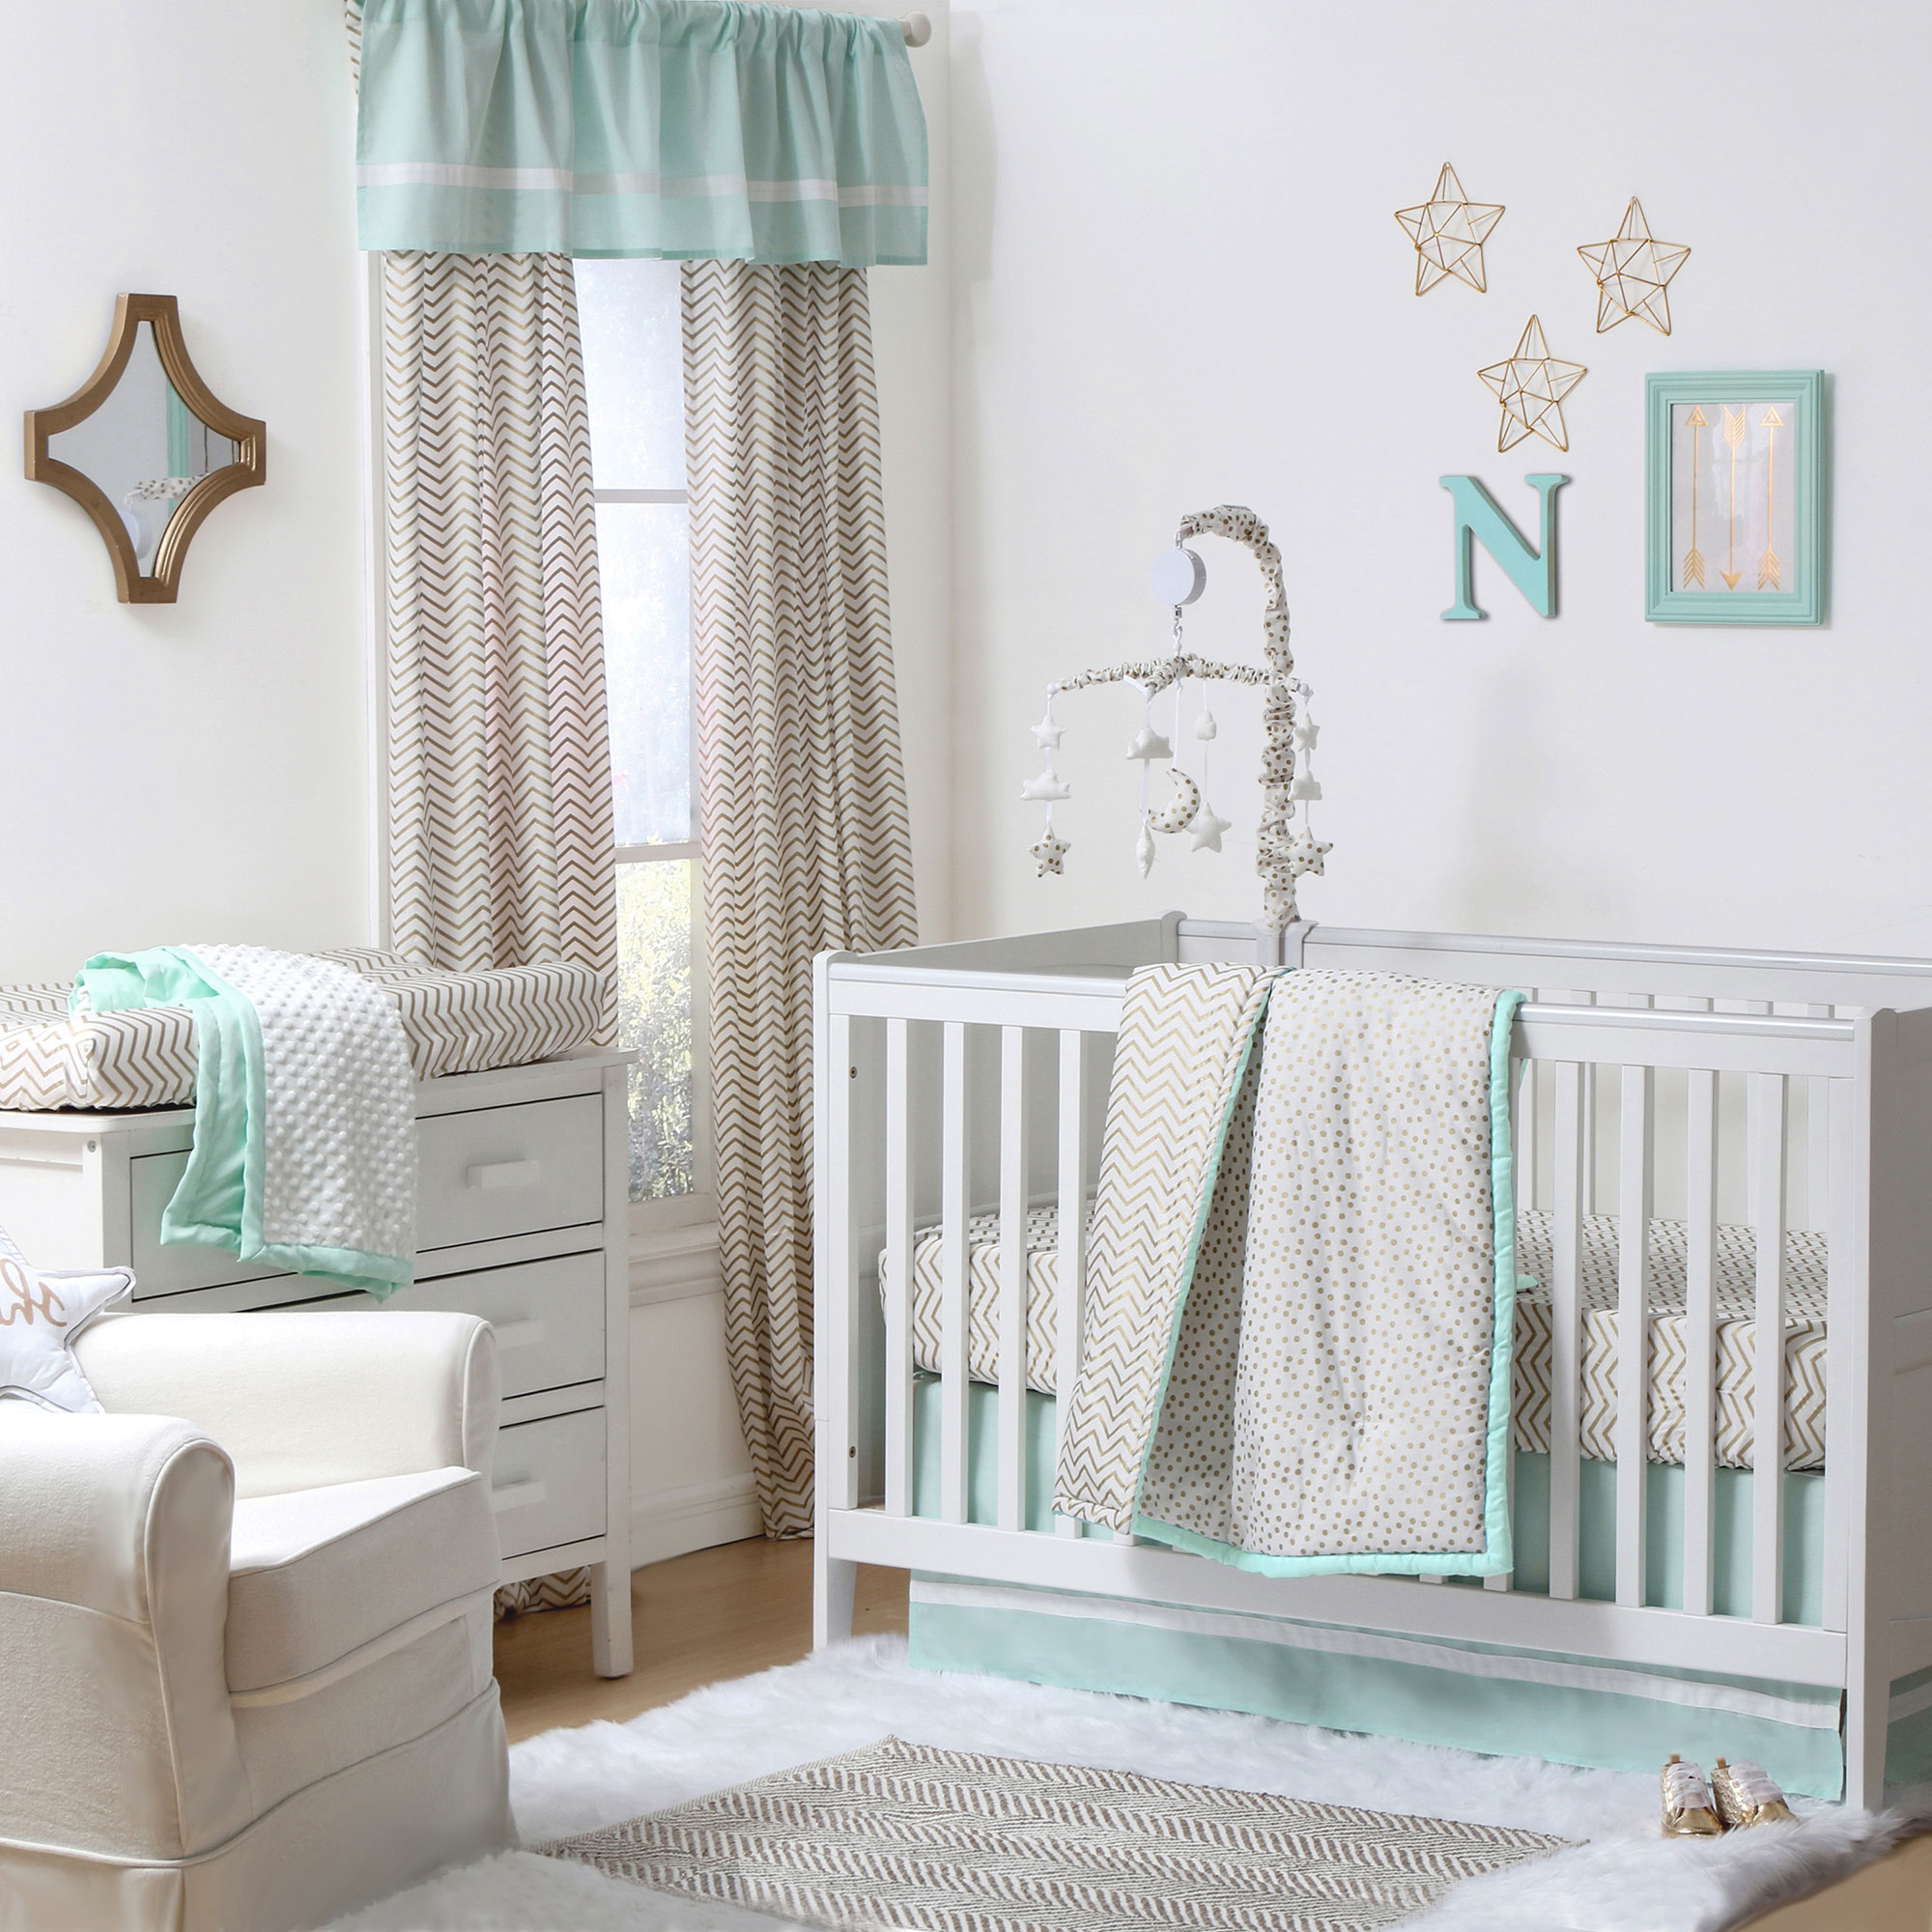 The Peanut Shell 3 Piece Baby Crib Bedding Set - Gold Zig Zag and Polka Dot with Mint Green - 100% Cotton Quilt, Crib Skirt and Sheet